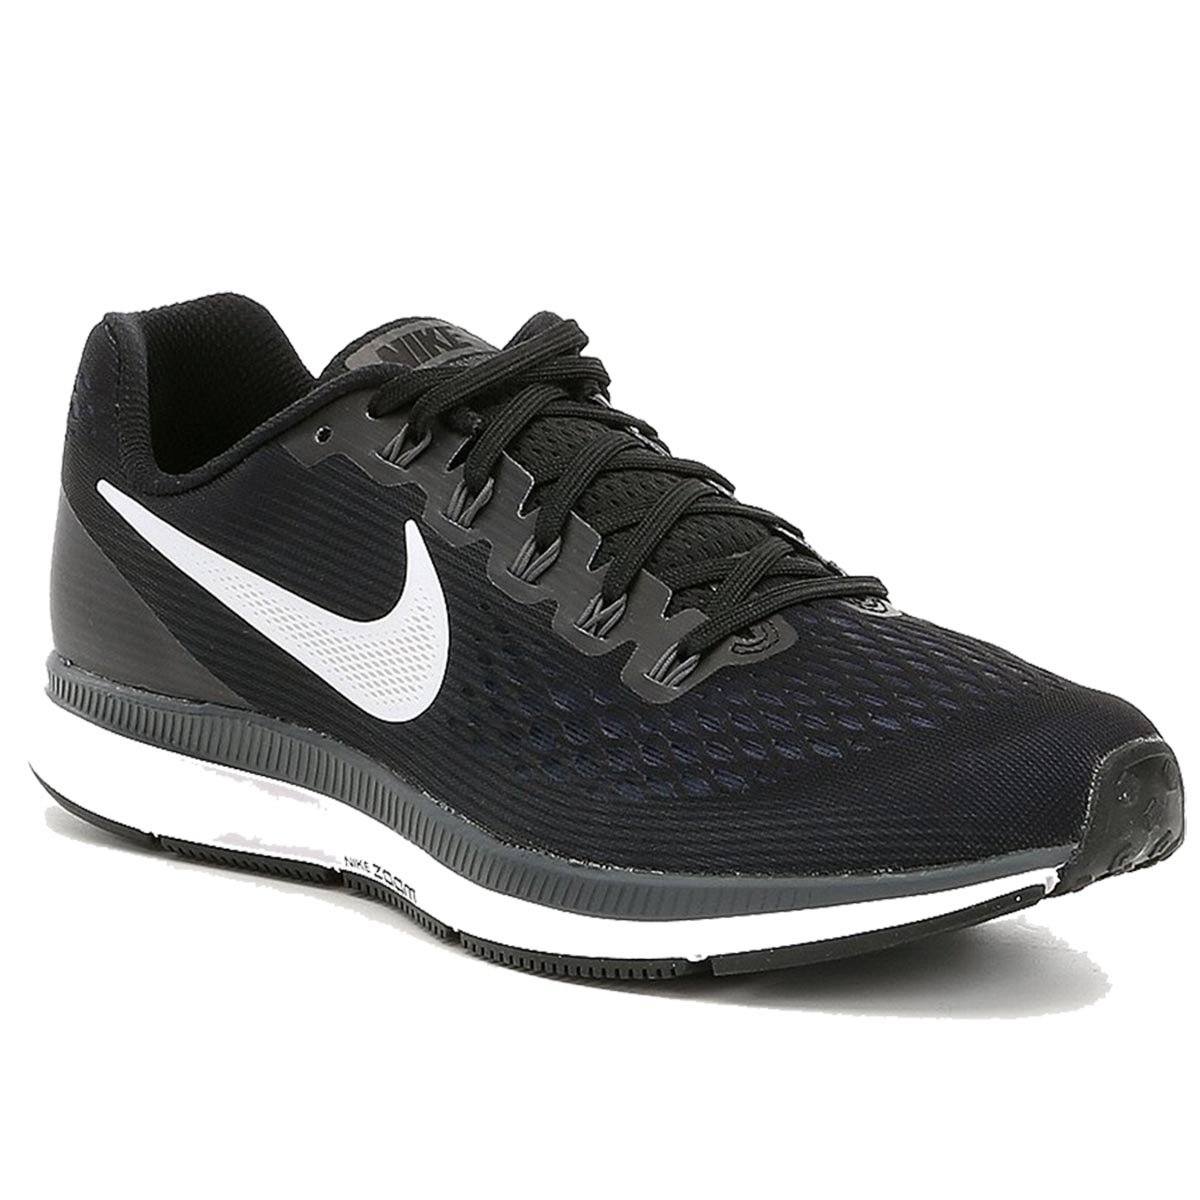 info for 77bf3 3d1f9 Nike Air Zoom Pegasus 34 Running Shoes (Black/White/Grey)